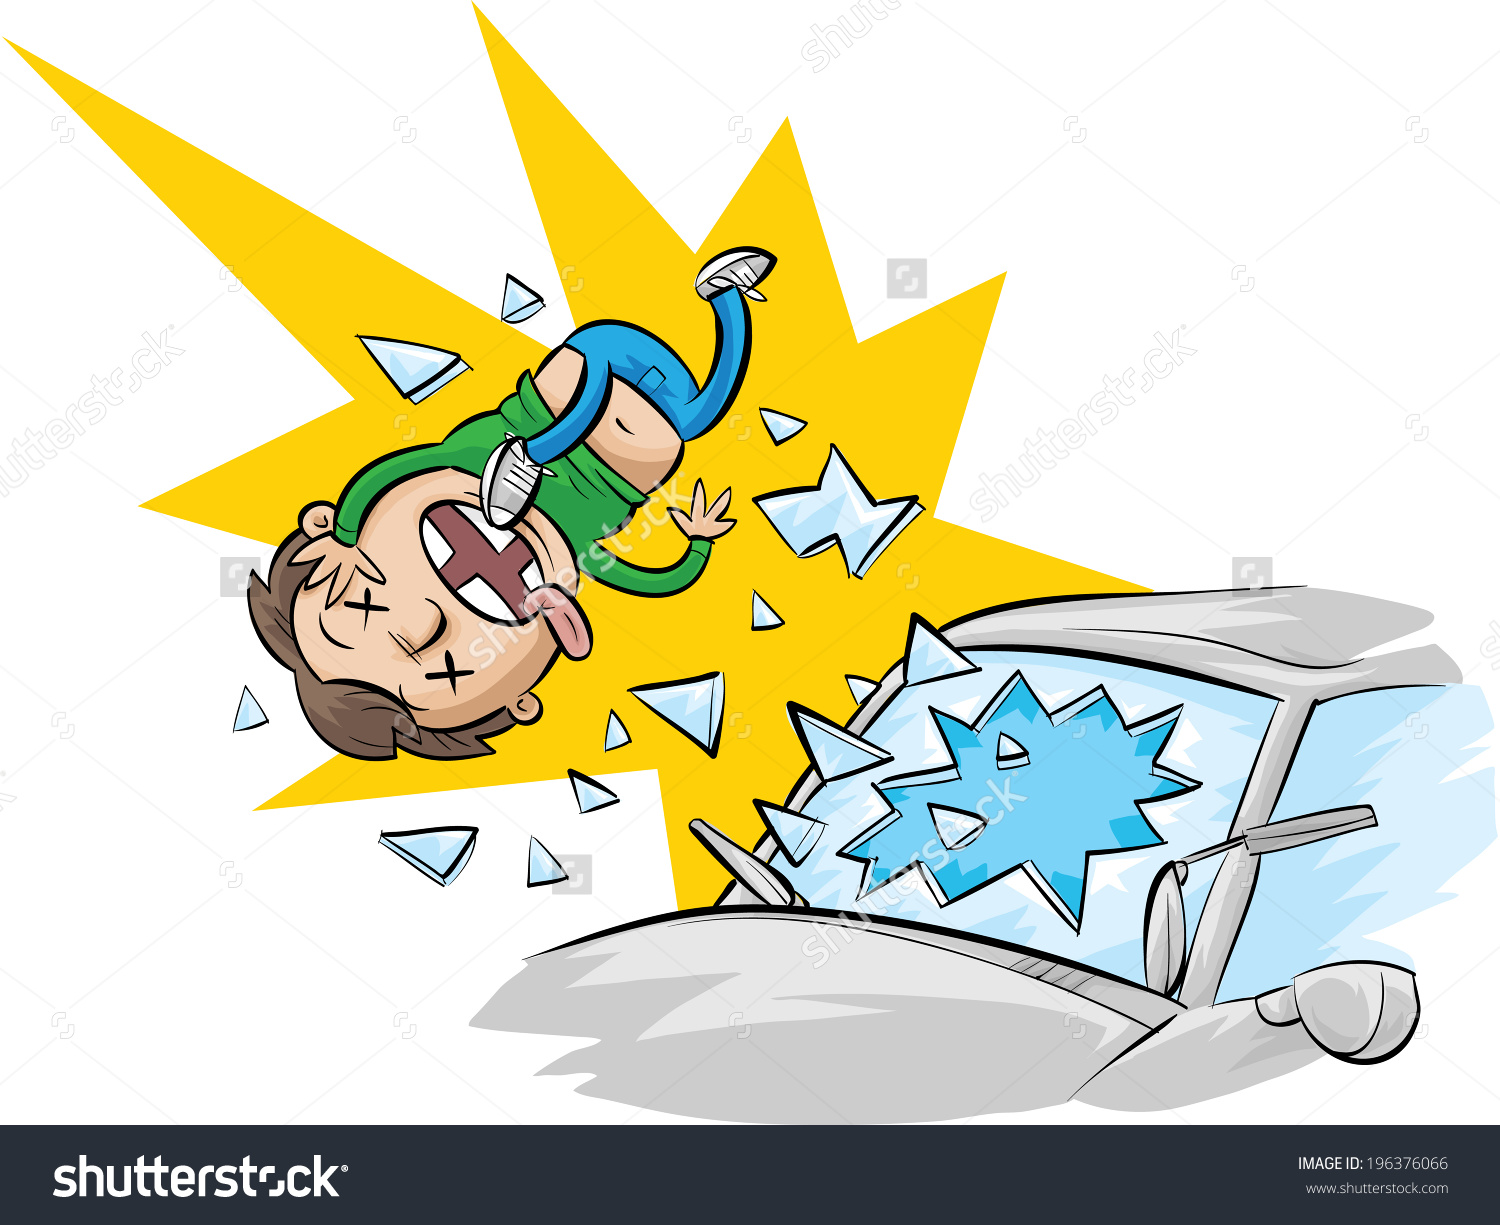 Cartoon Man Ejected Through Windshield Not Stock Vector 196376066.